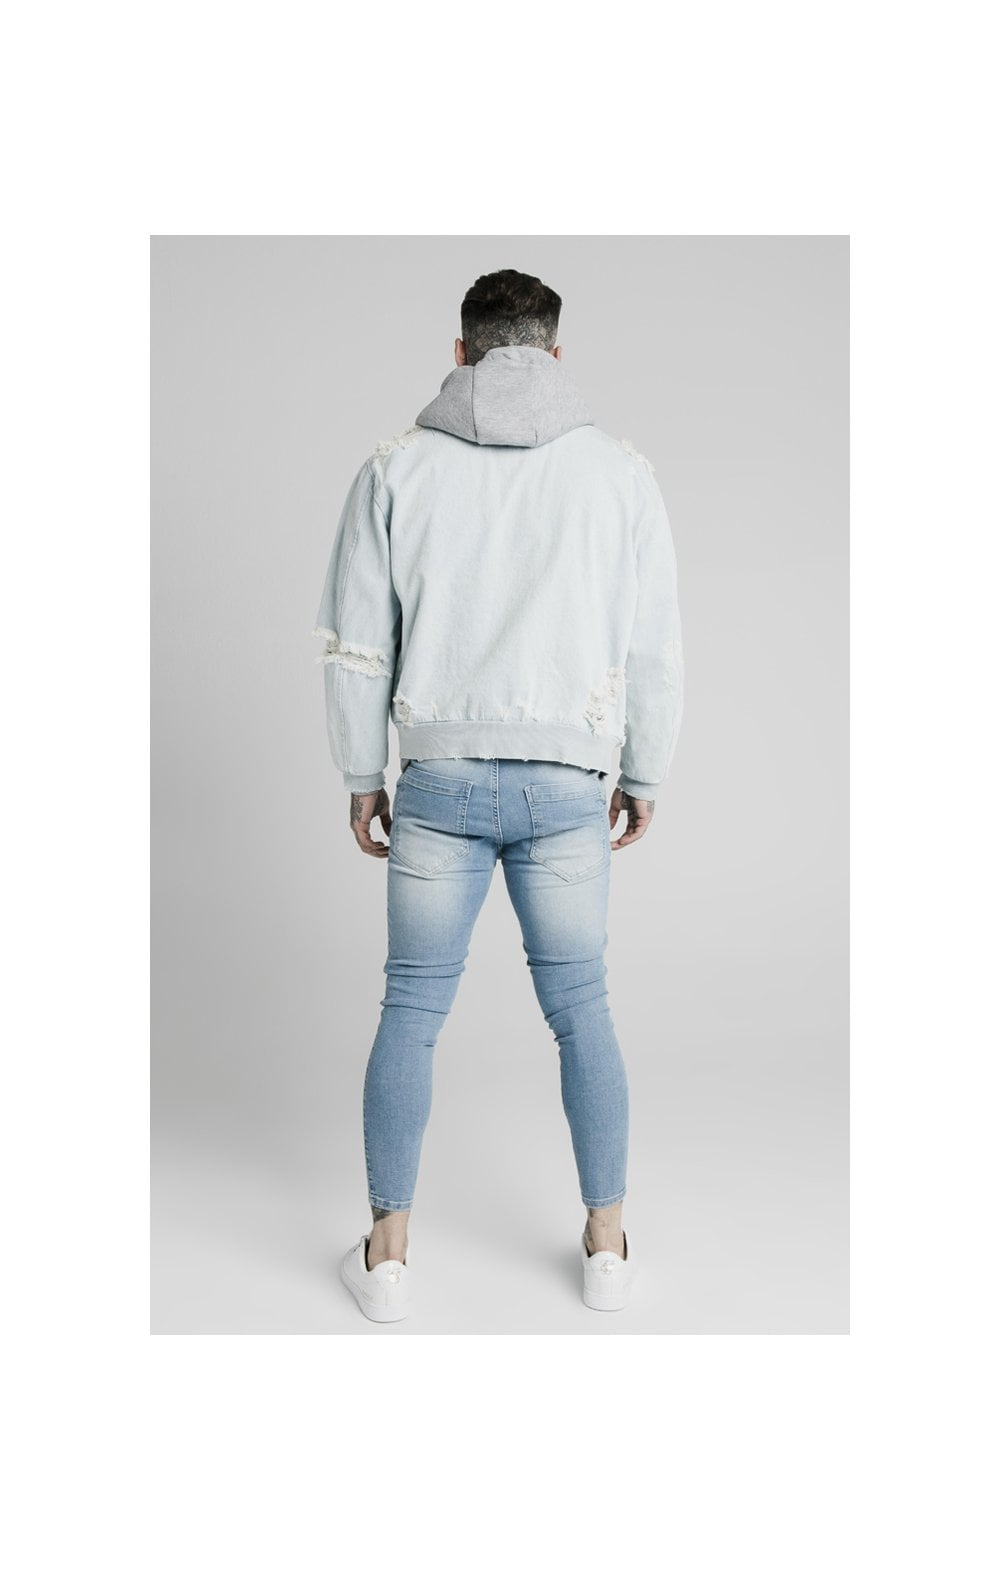 SikSilk Distressed Denim Bomber Jacket - Light Blue (5)